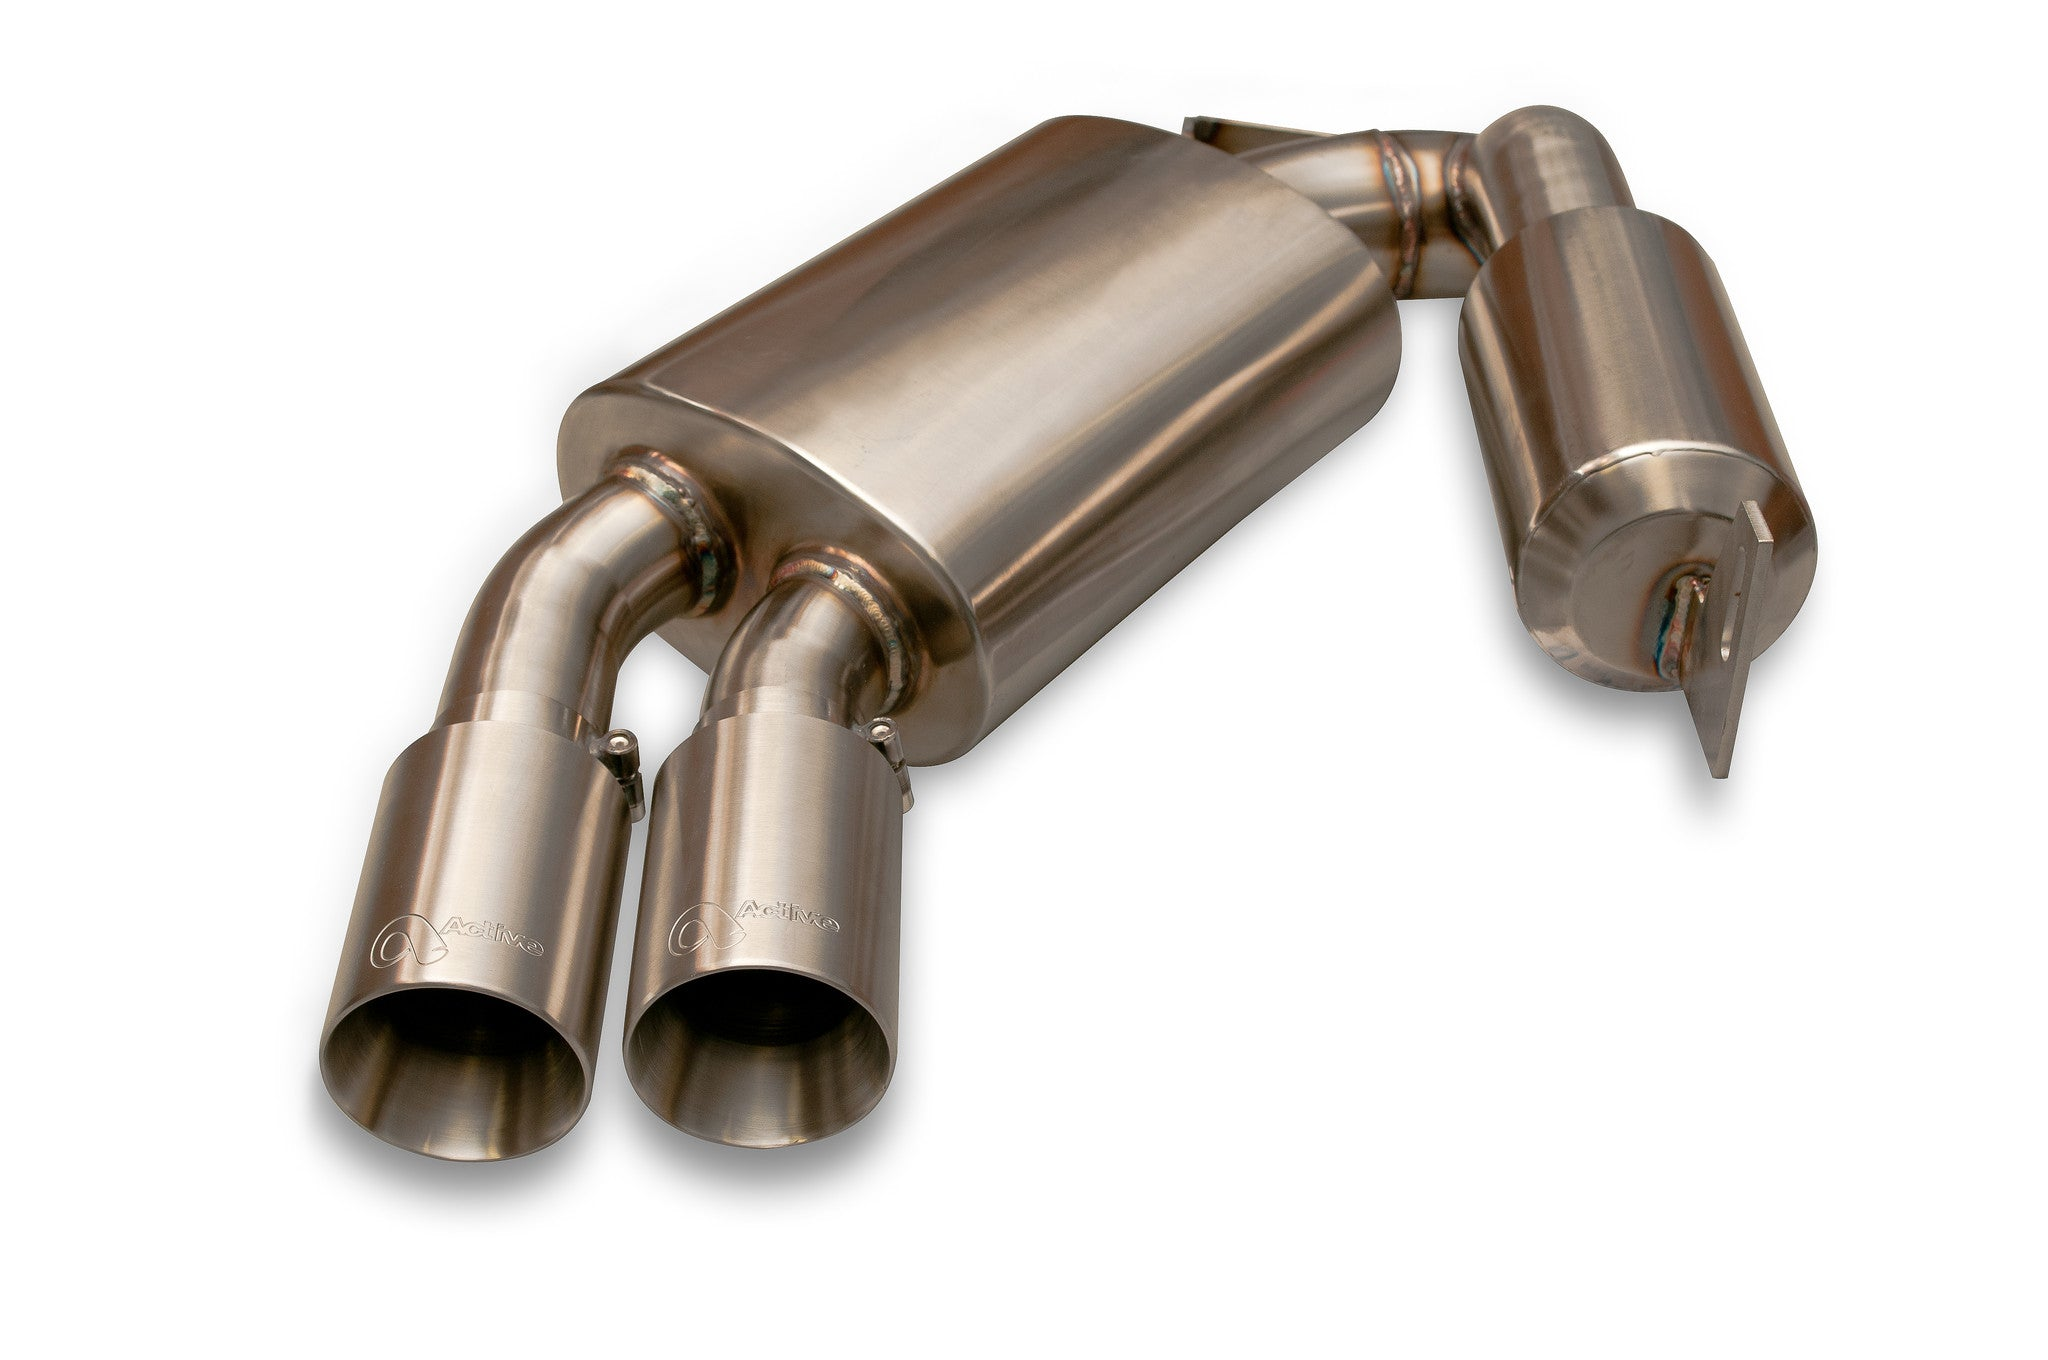 BMW exhaust for the N52 328i